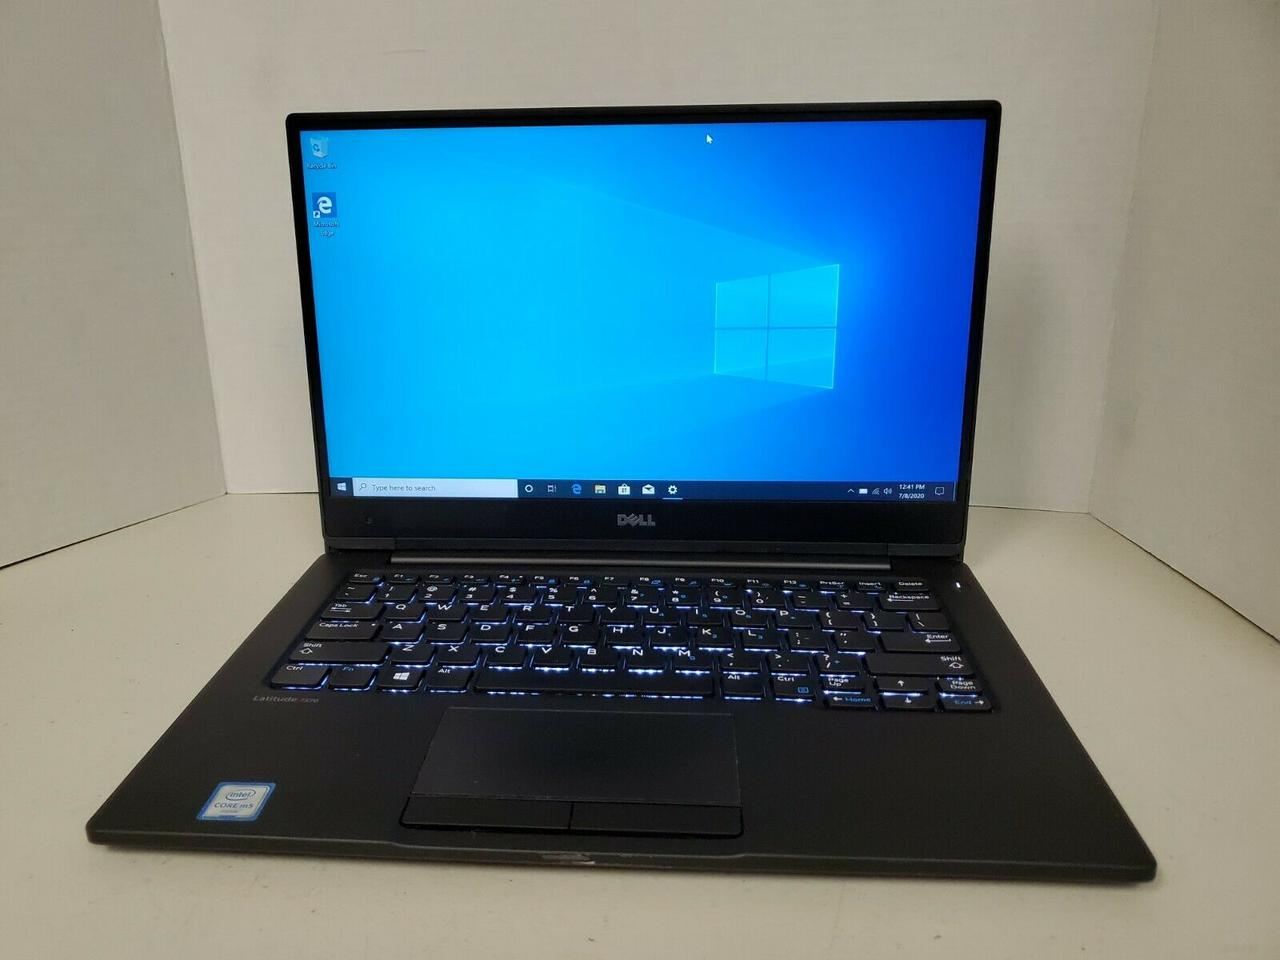 Ноутбук Dell Latitude 13 7370 13,3 (1920x1080)/ Core M5-6Y57 (2(4)x max2.8GHz)/ RAM 8GB/ SSD 128GB/ АКБ 23Wh/